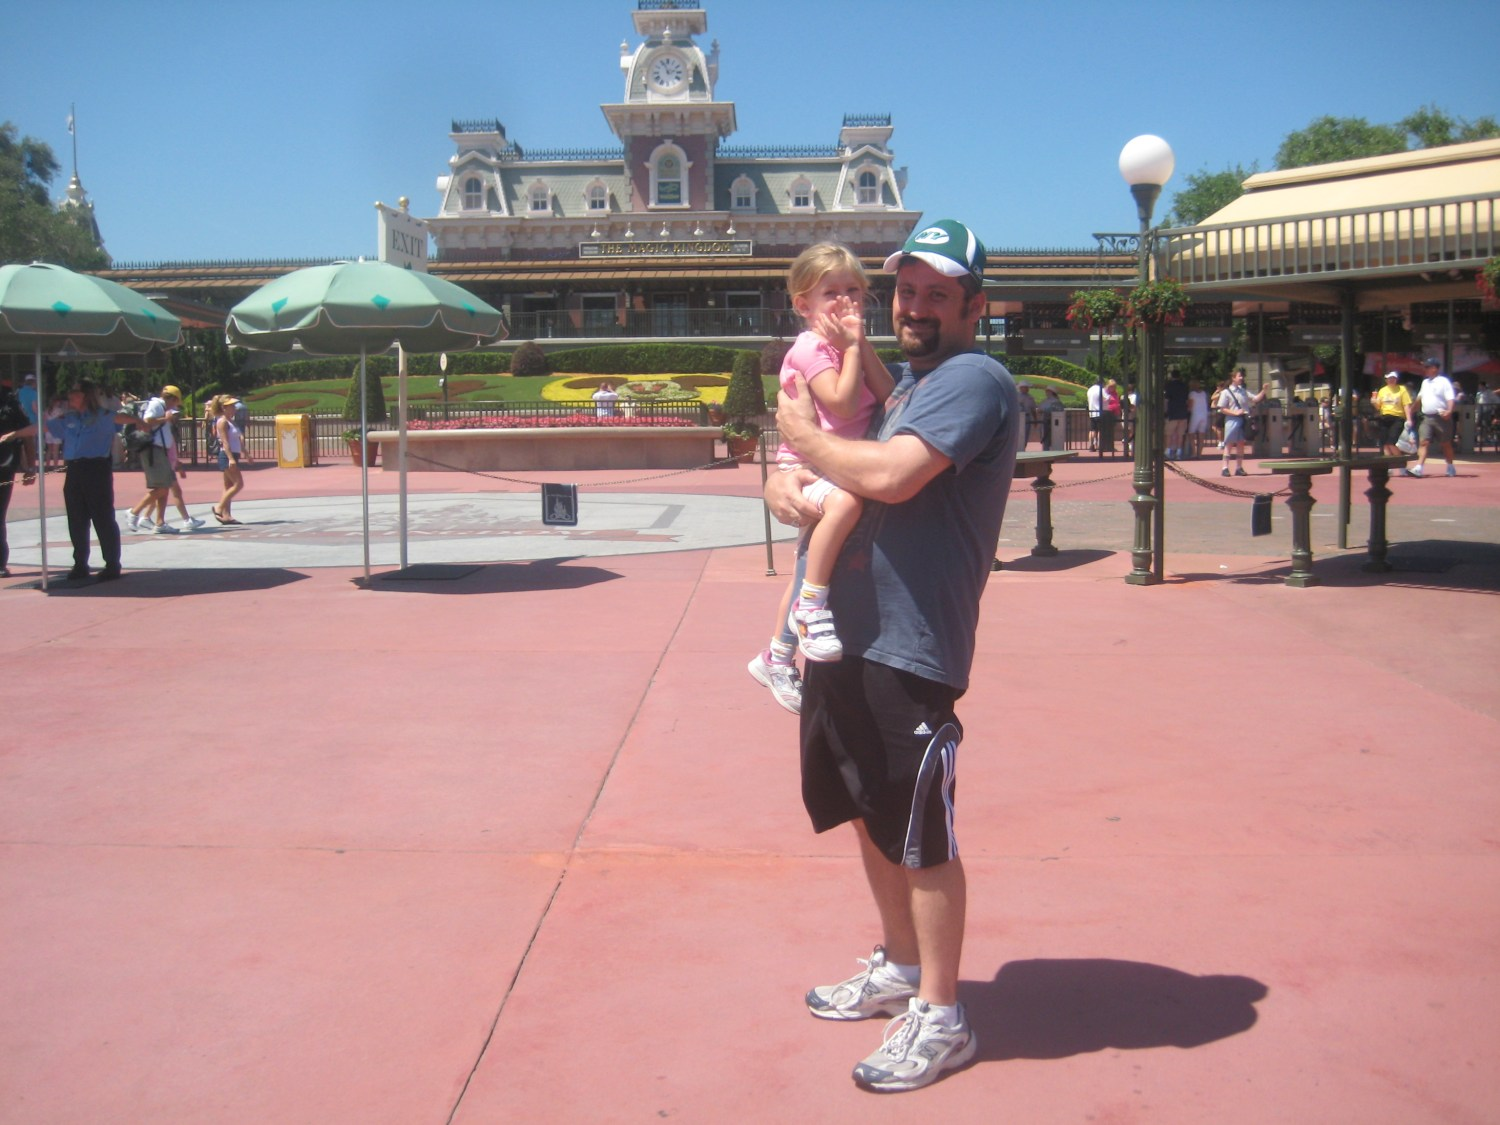 Field Trips: Disney World – The Magic Kingdom